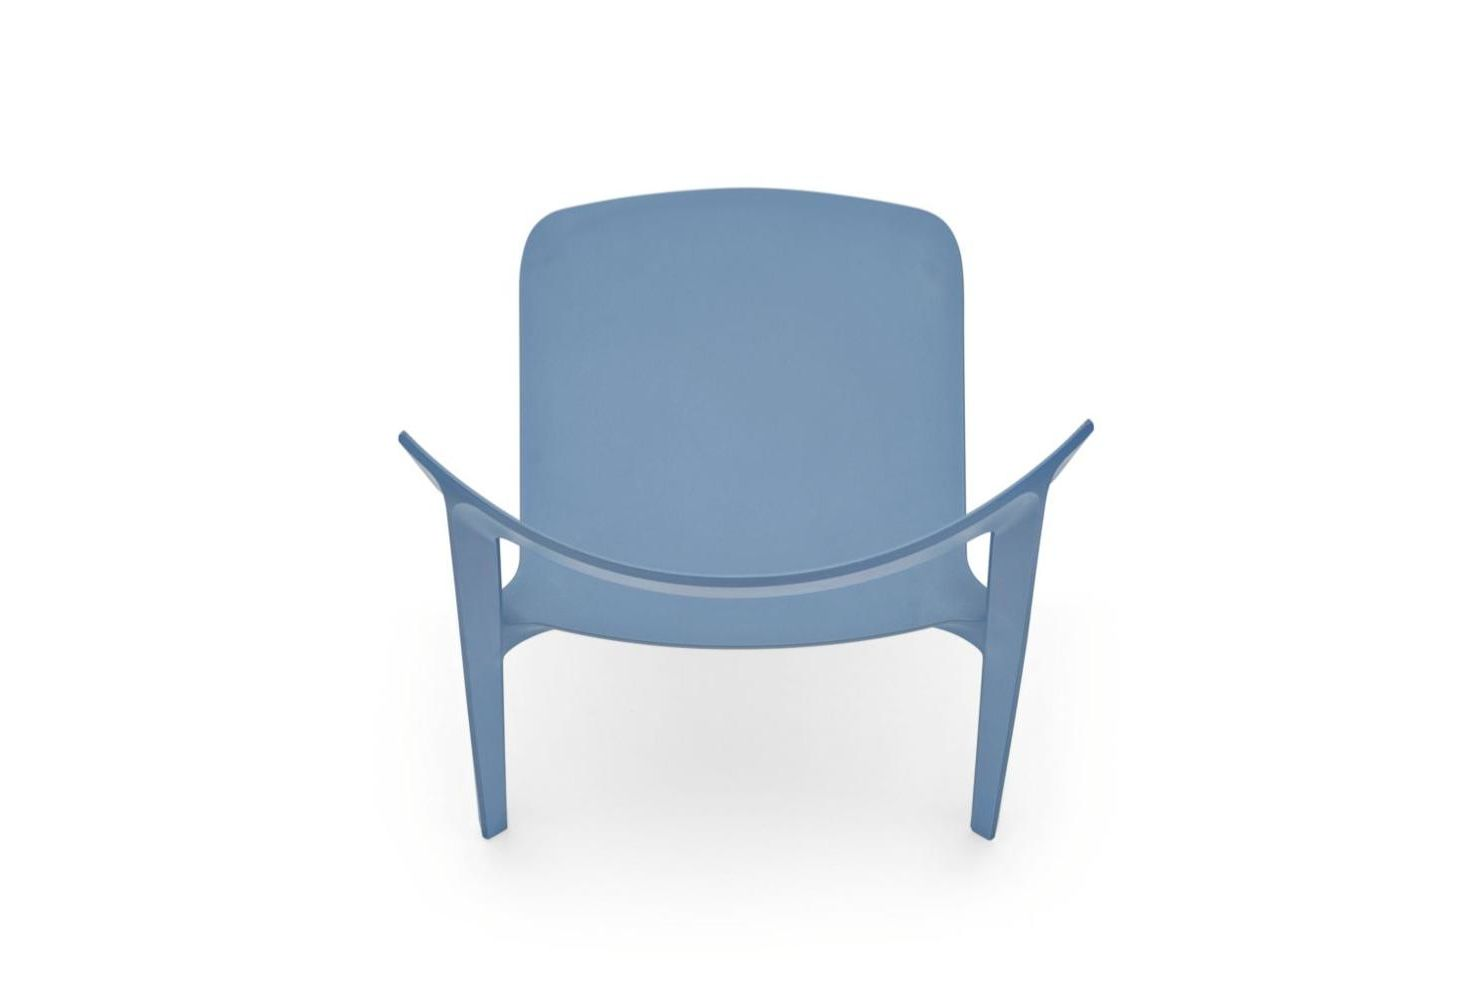 Skin cs1391 P100 UP  Calligaris Skin Chair  sky blue